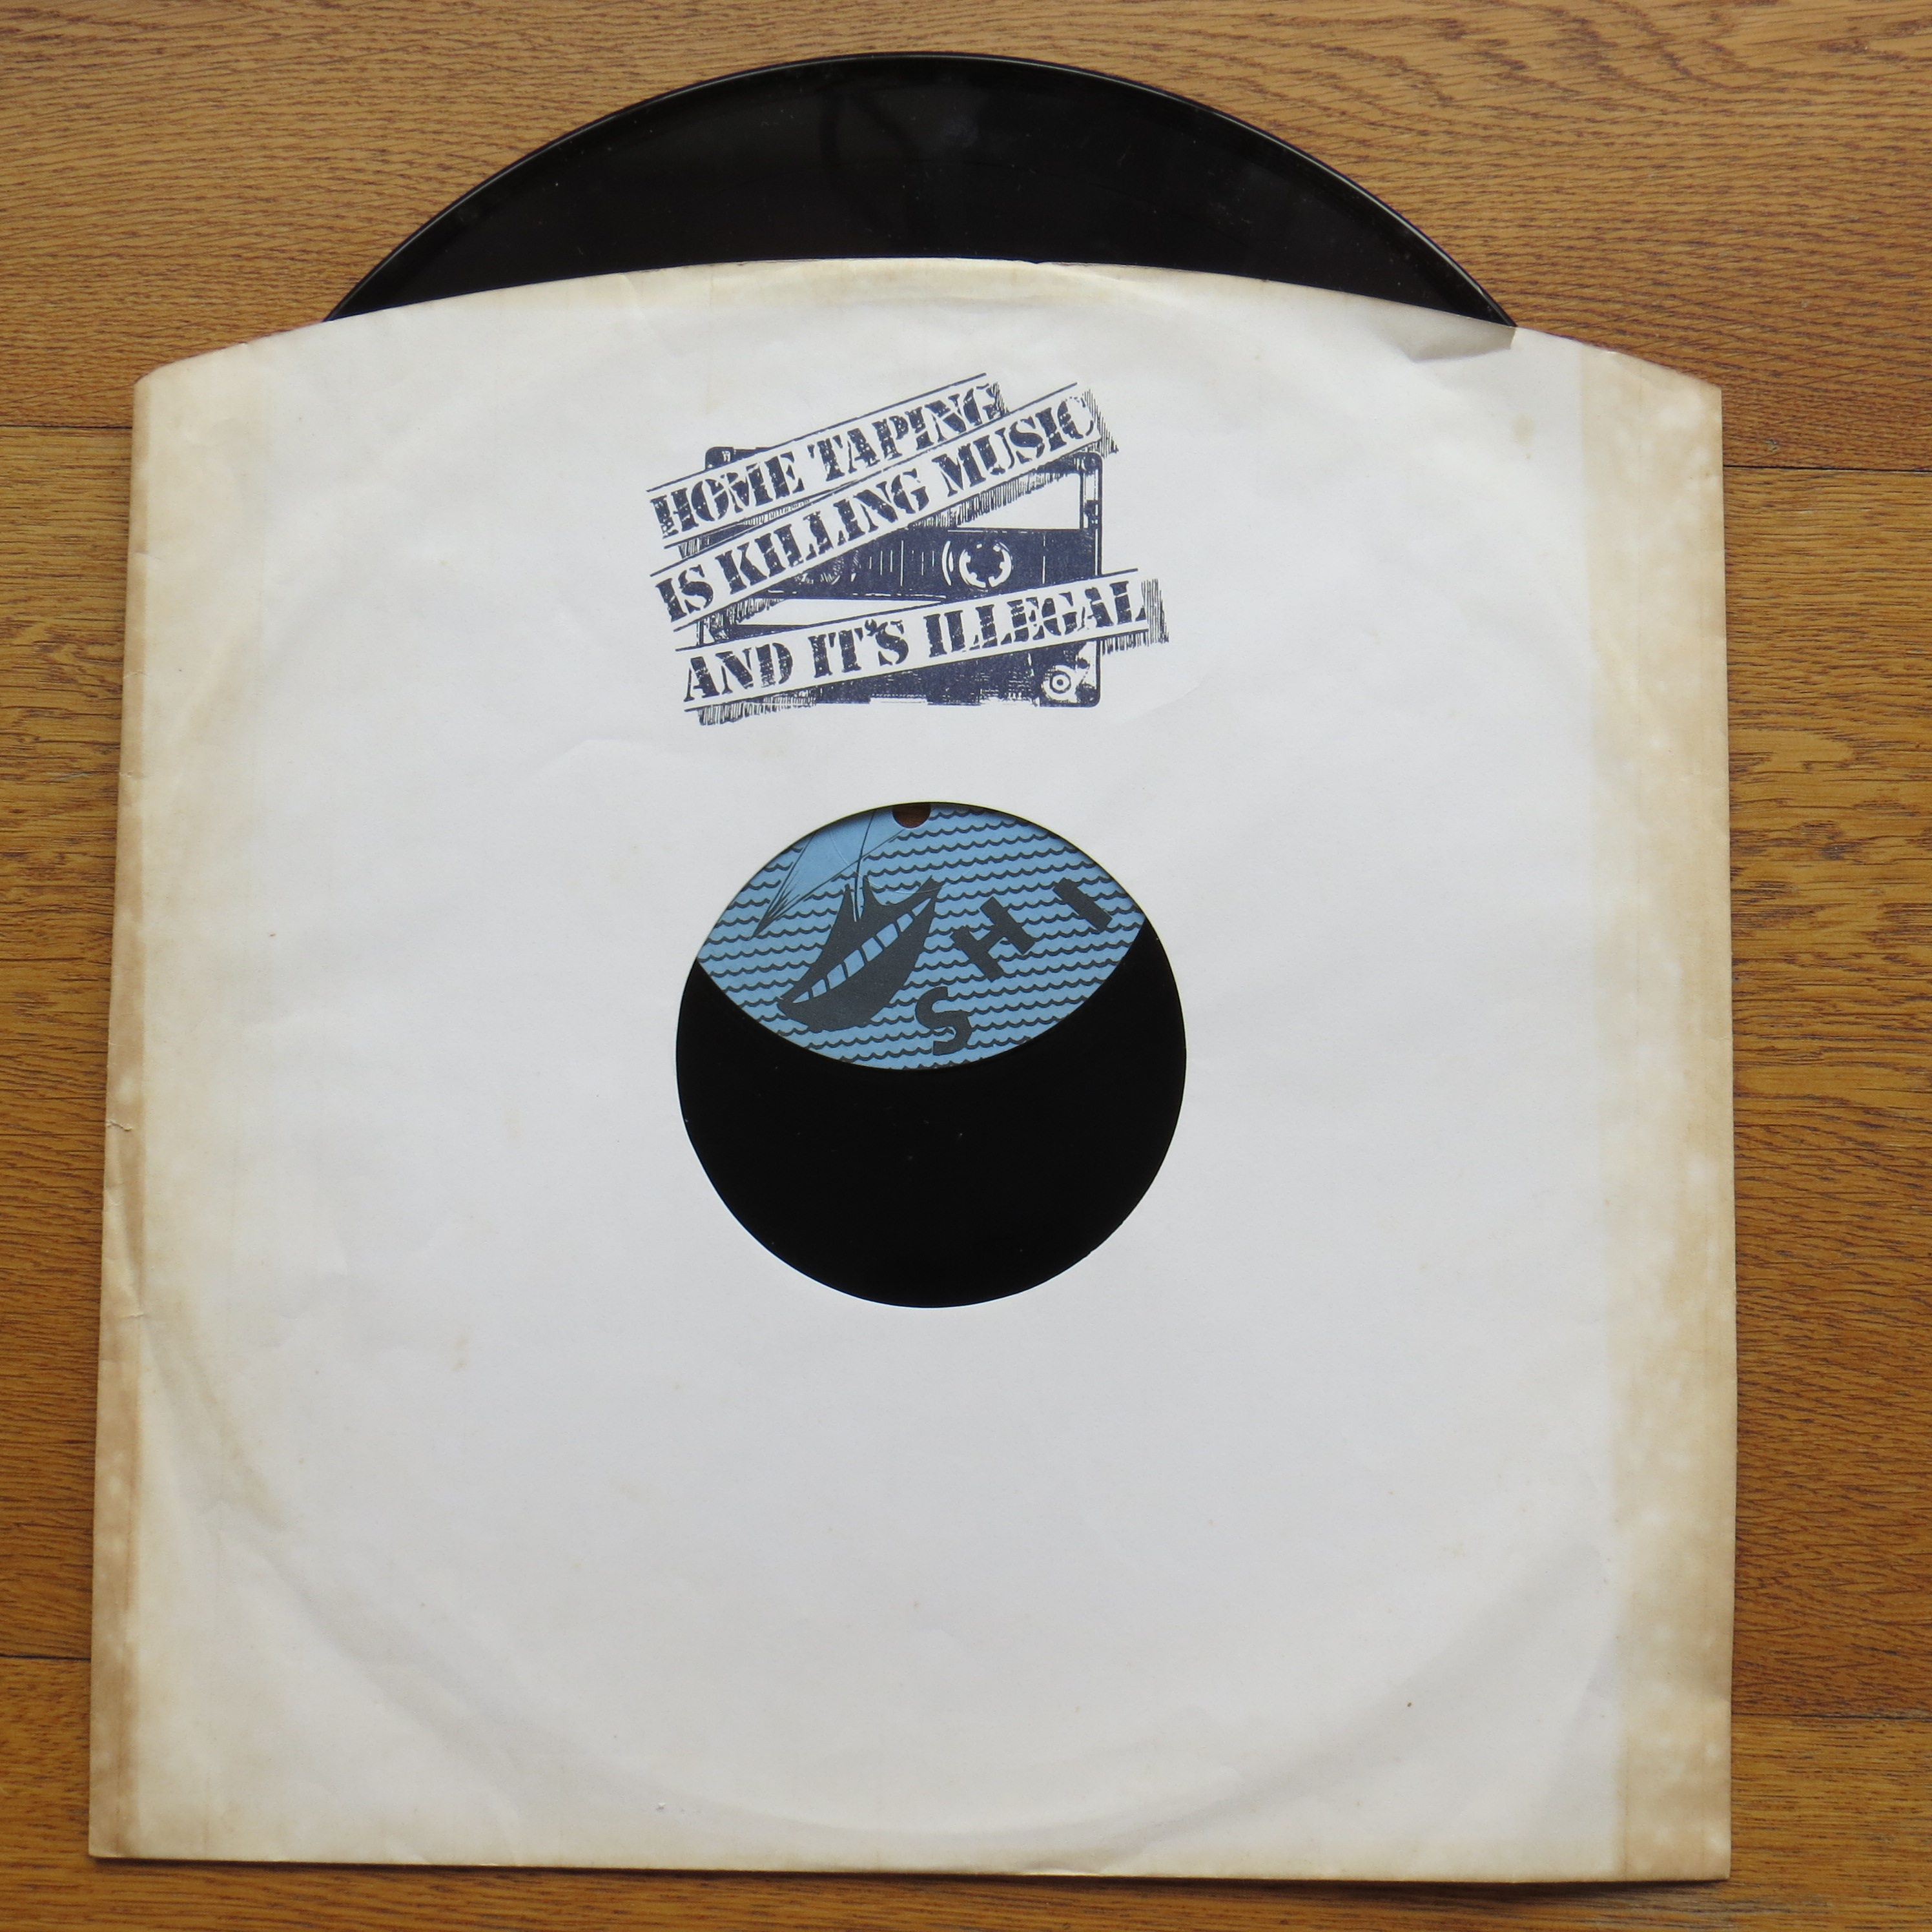 Shifty record sleeve saying Home Taping is Killing Music